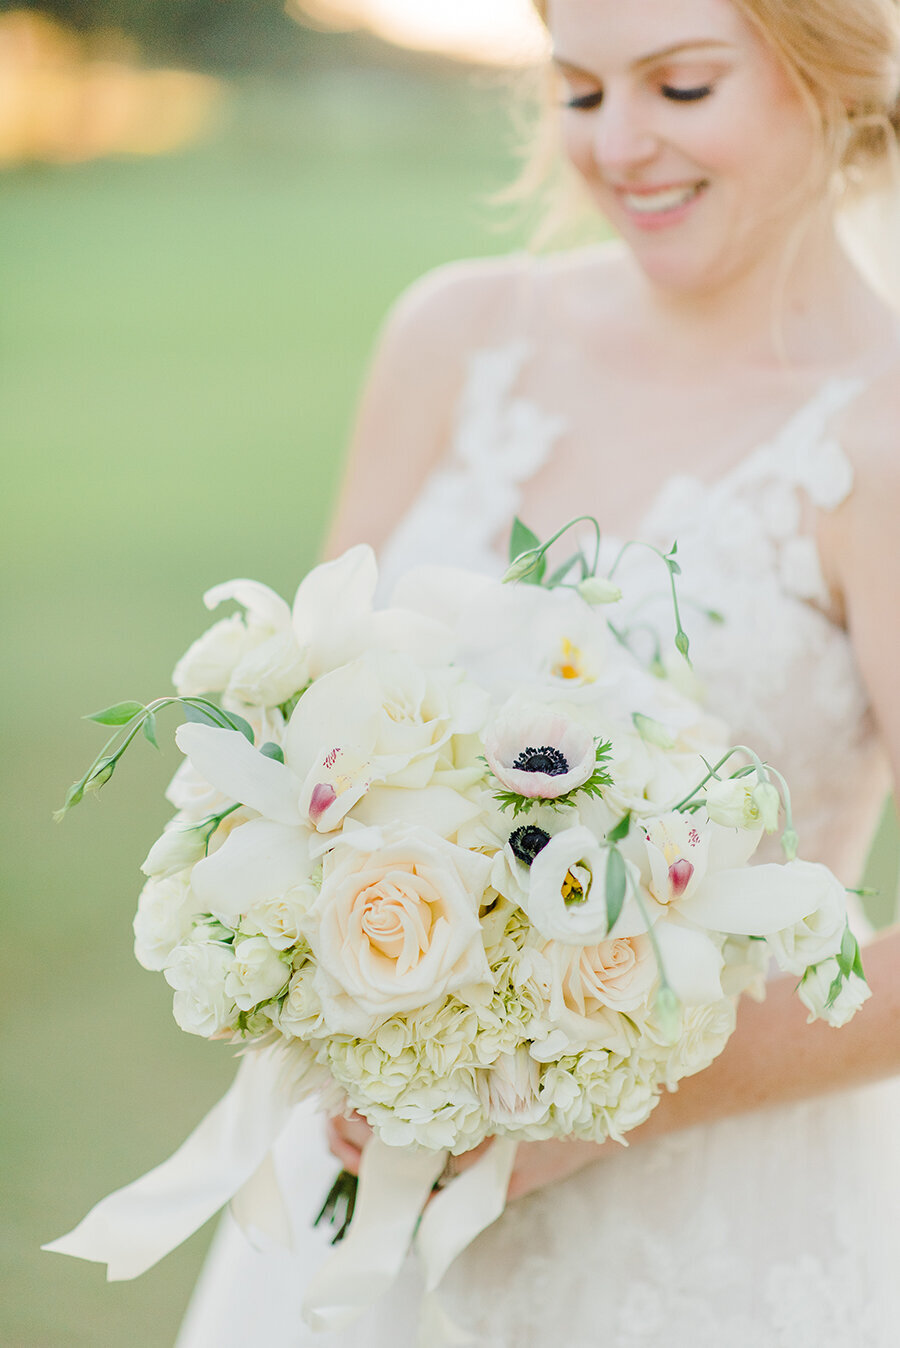 Bridal Portraits - Bride's Bouquet